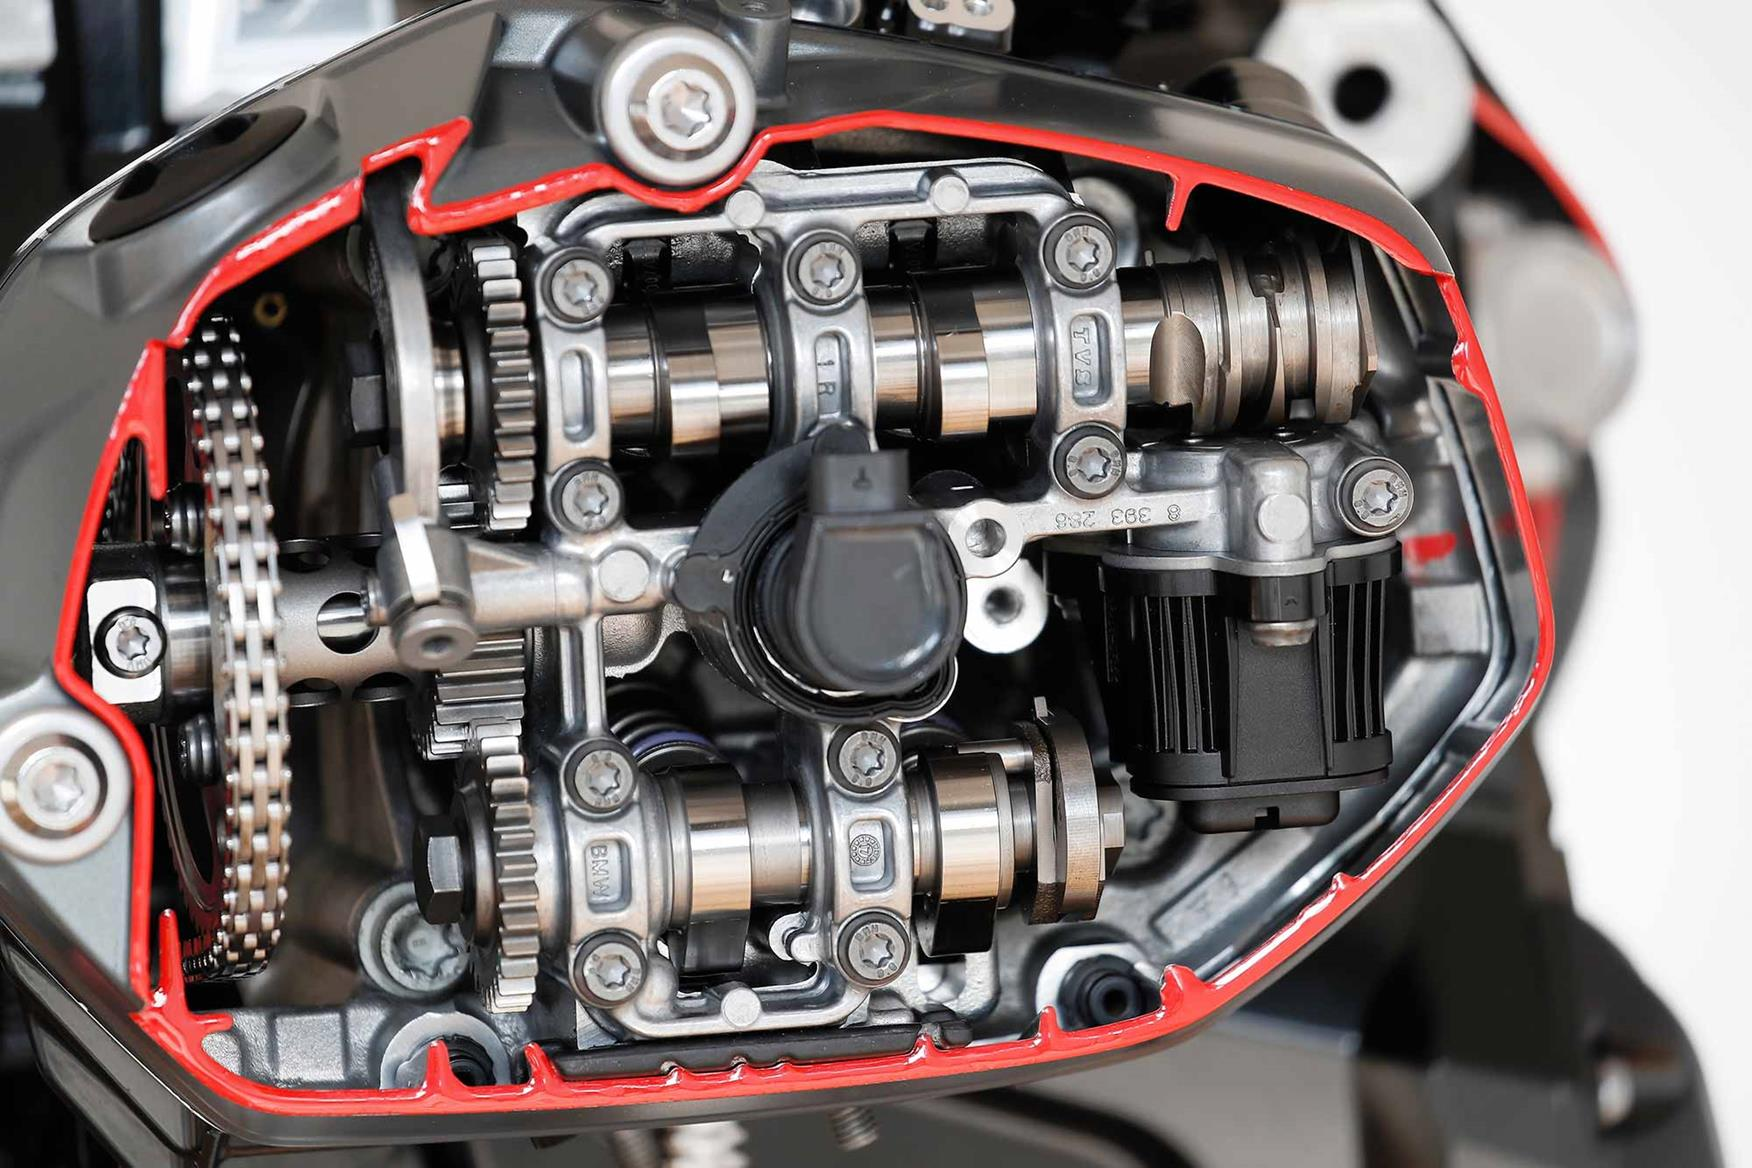 The BMW R1250GS engine in all its glory